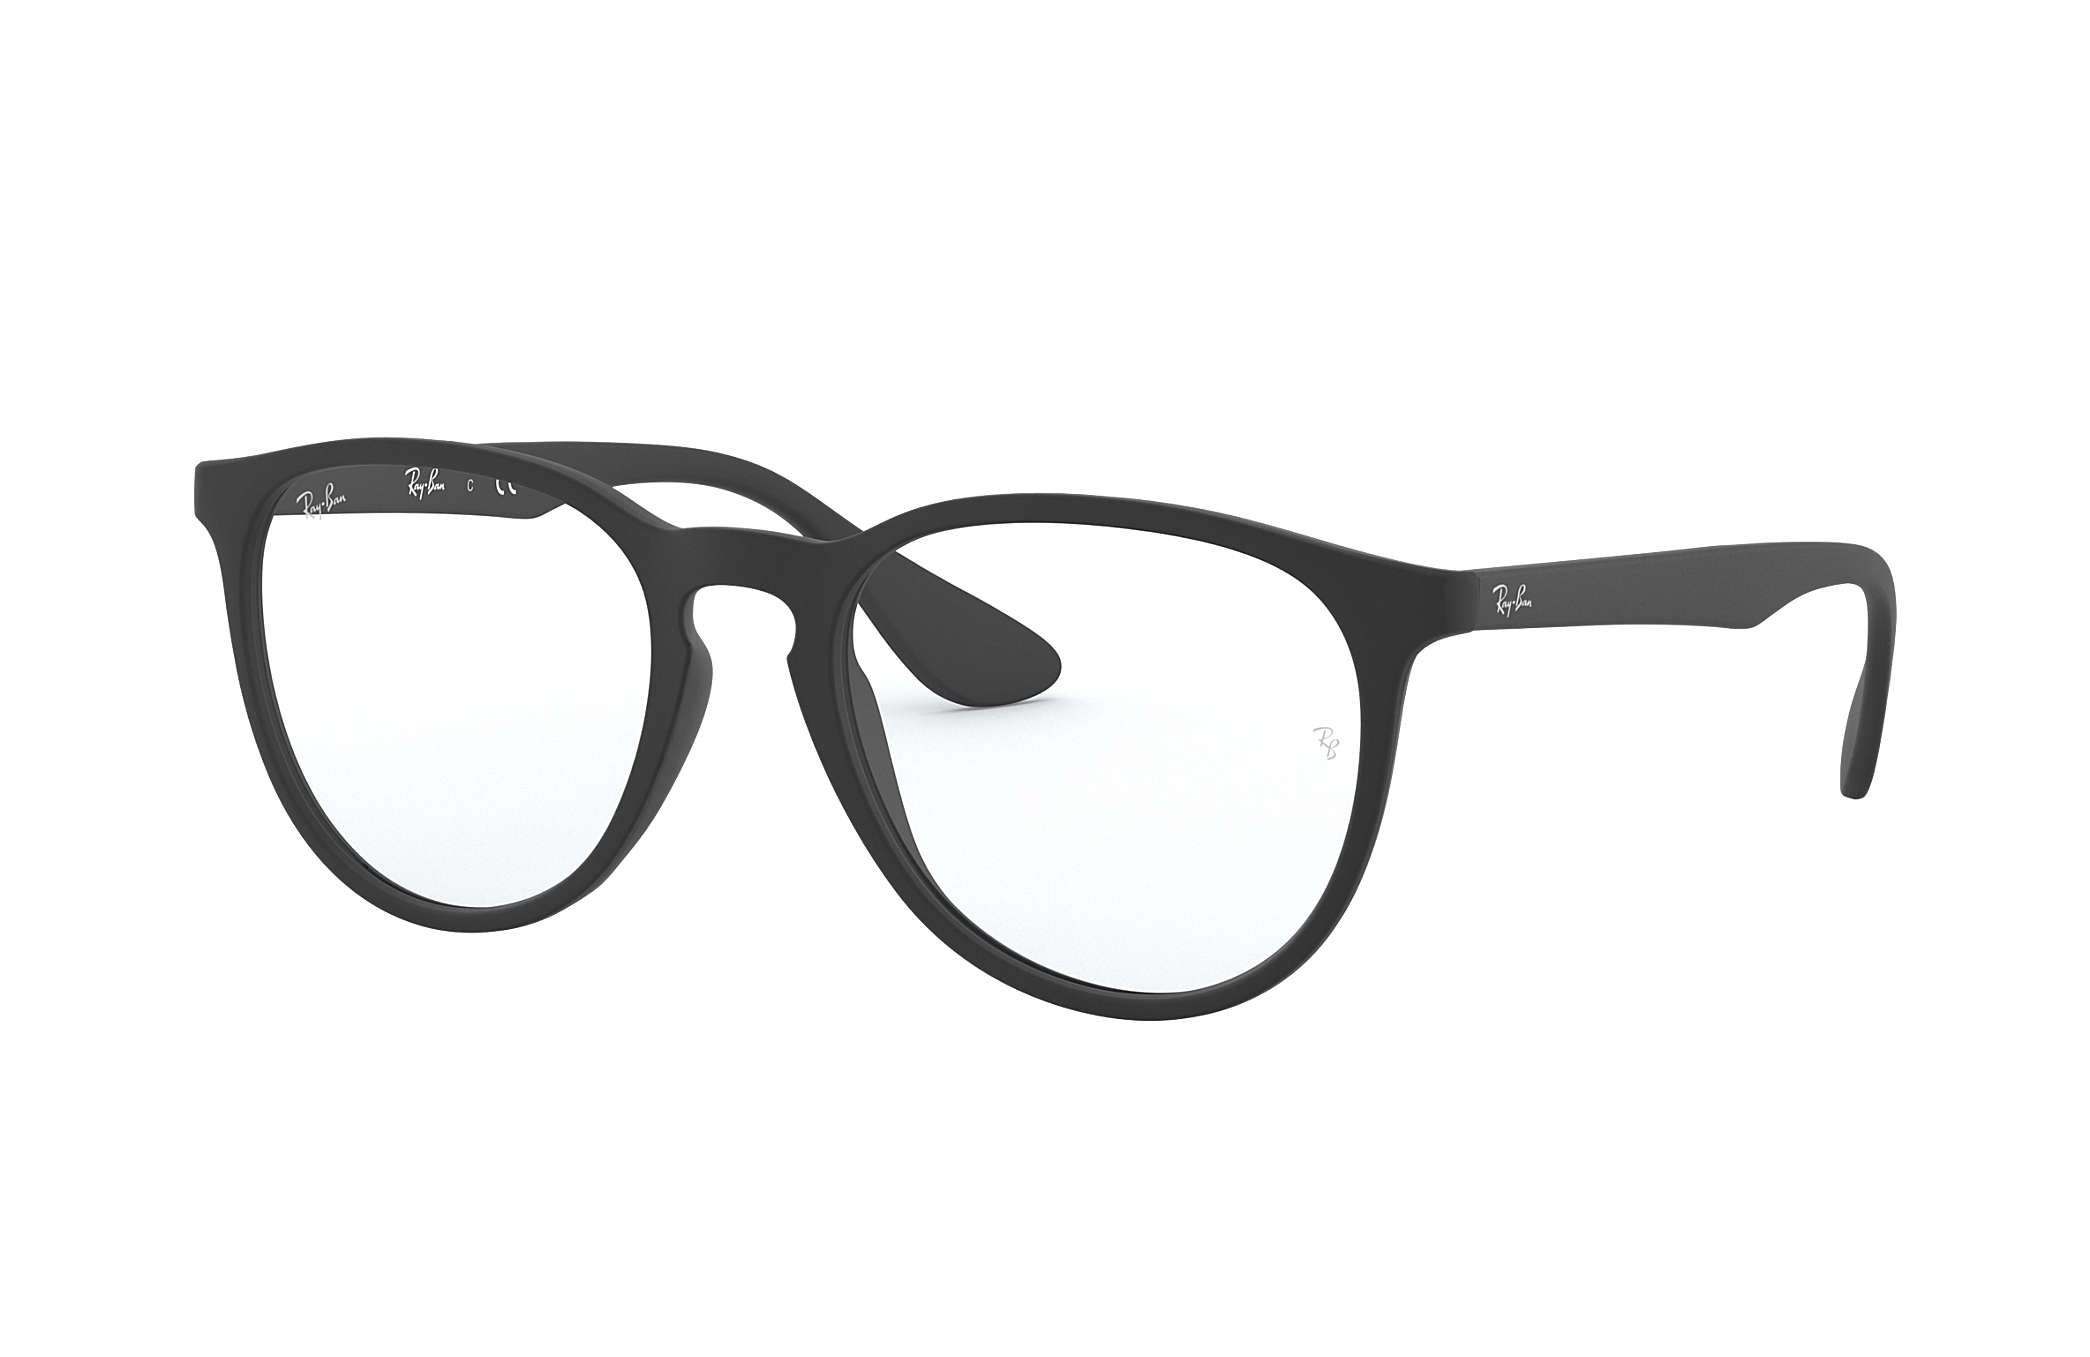 ray ban prescription glasses erika optics rb7046 black nylon rh ray ban com